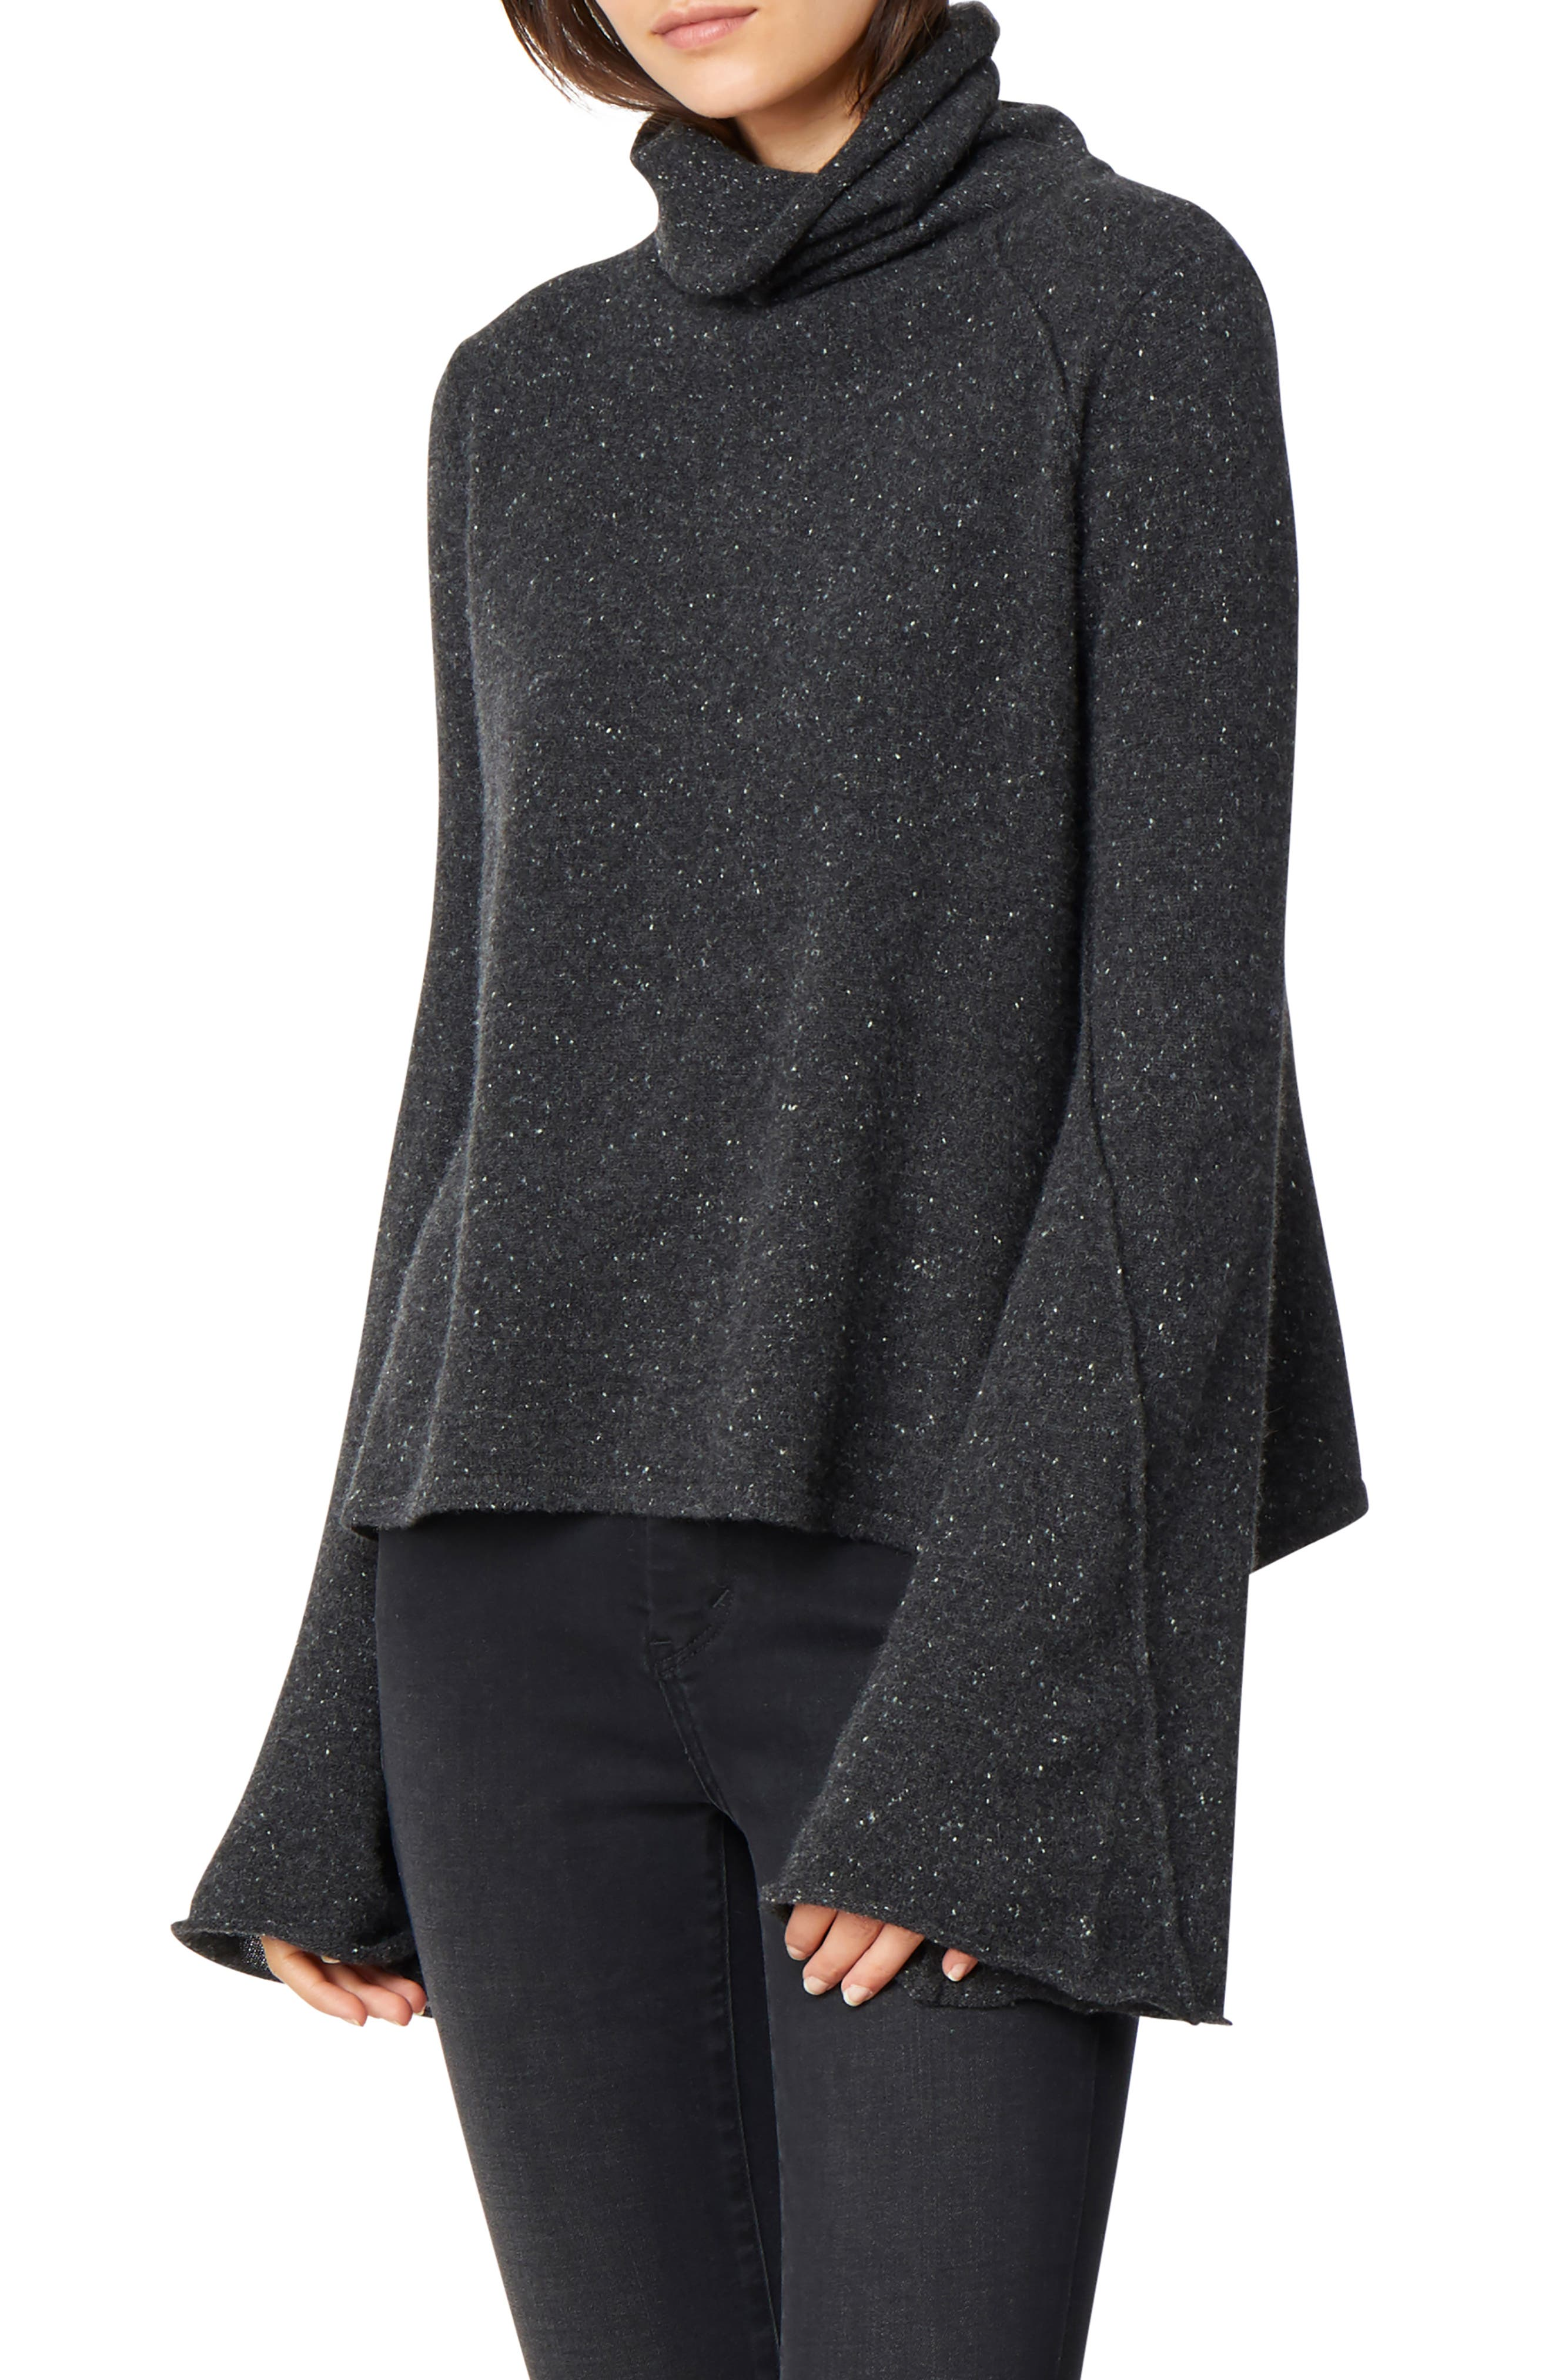 HABITUAL, Adalyn Oversize Bell Sleeve Cashmere Sweater, Main thumbnail 1, color, 001